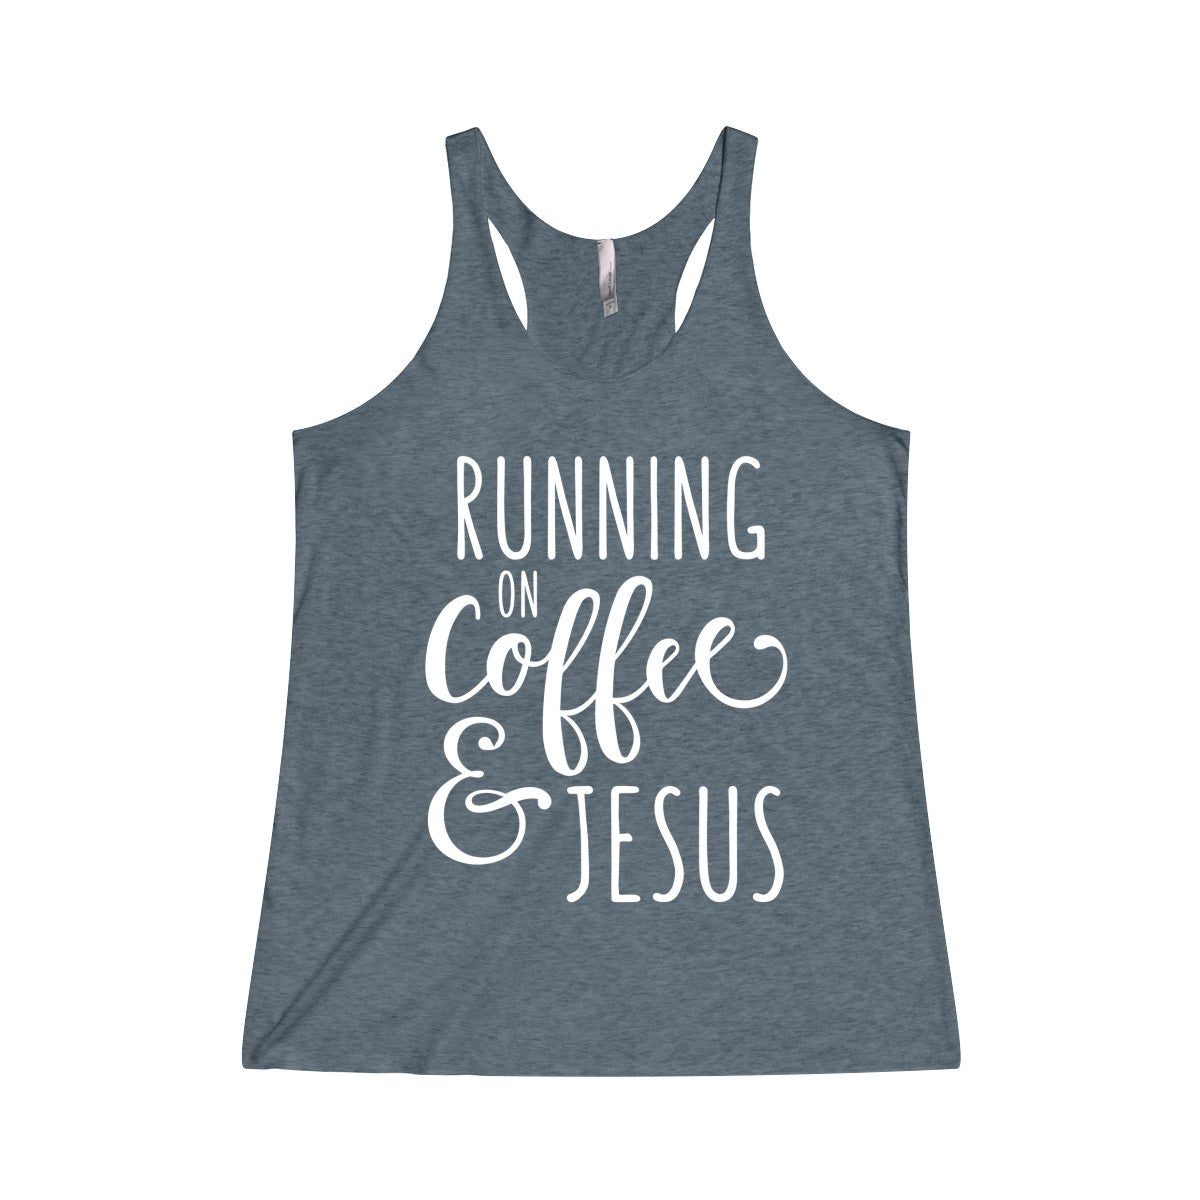 Running on Coffee and Jesus Tri-Blend Racerback Tank